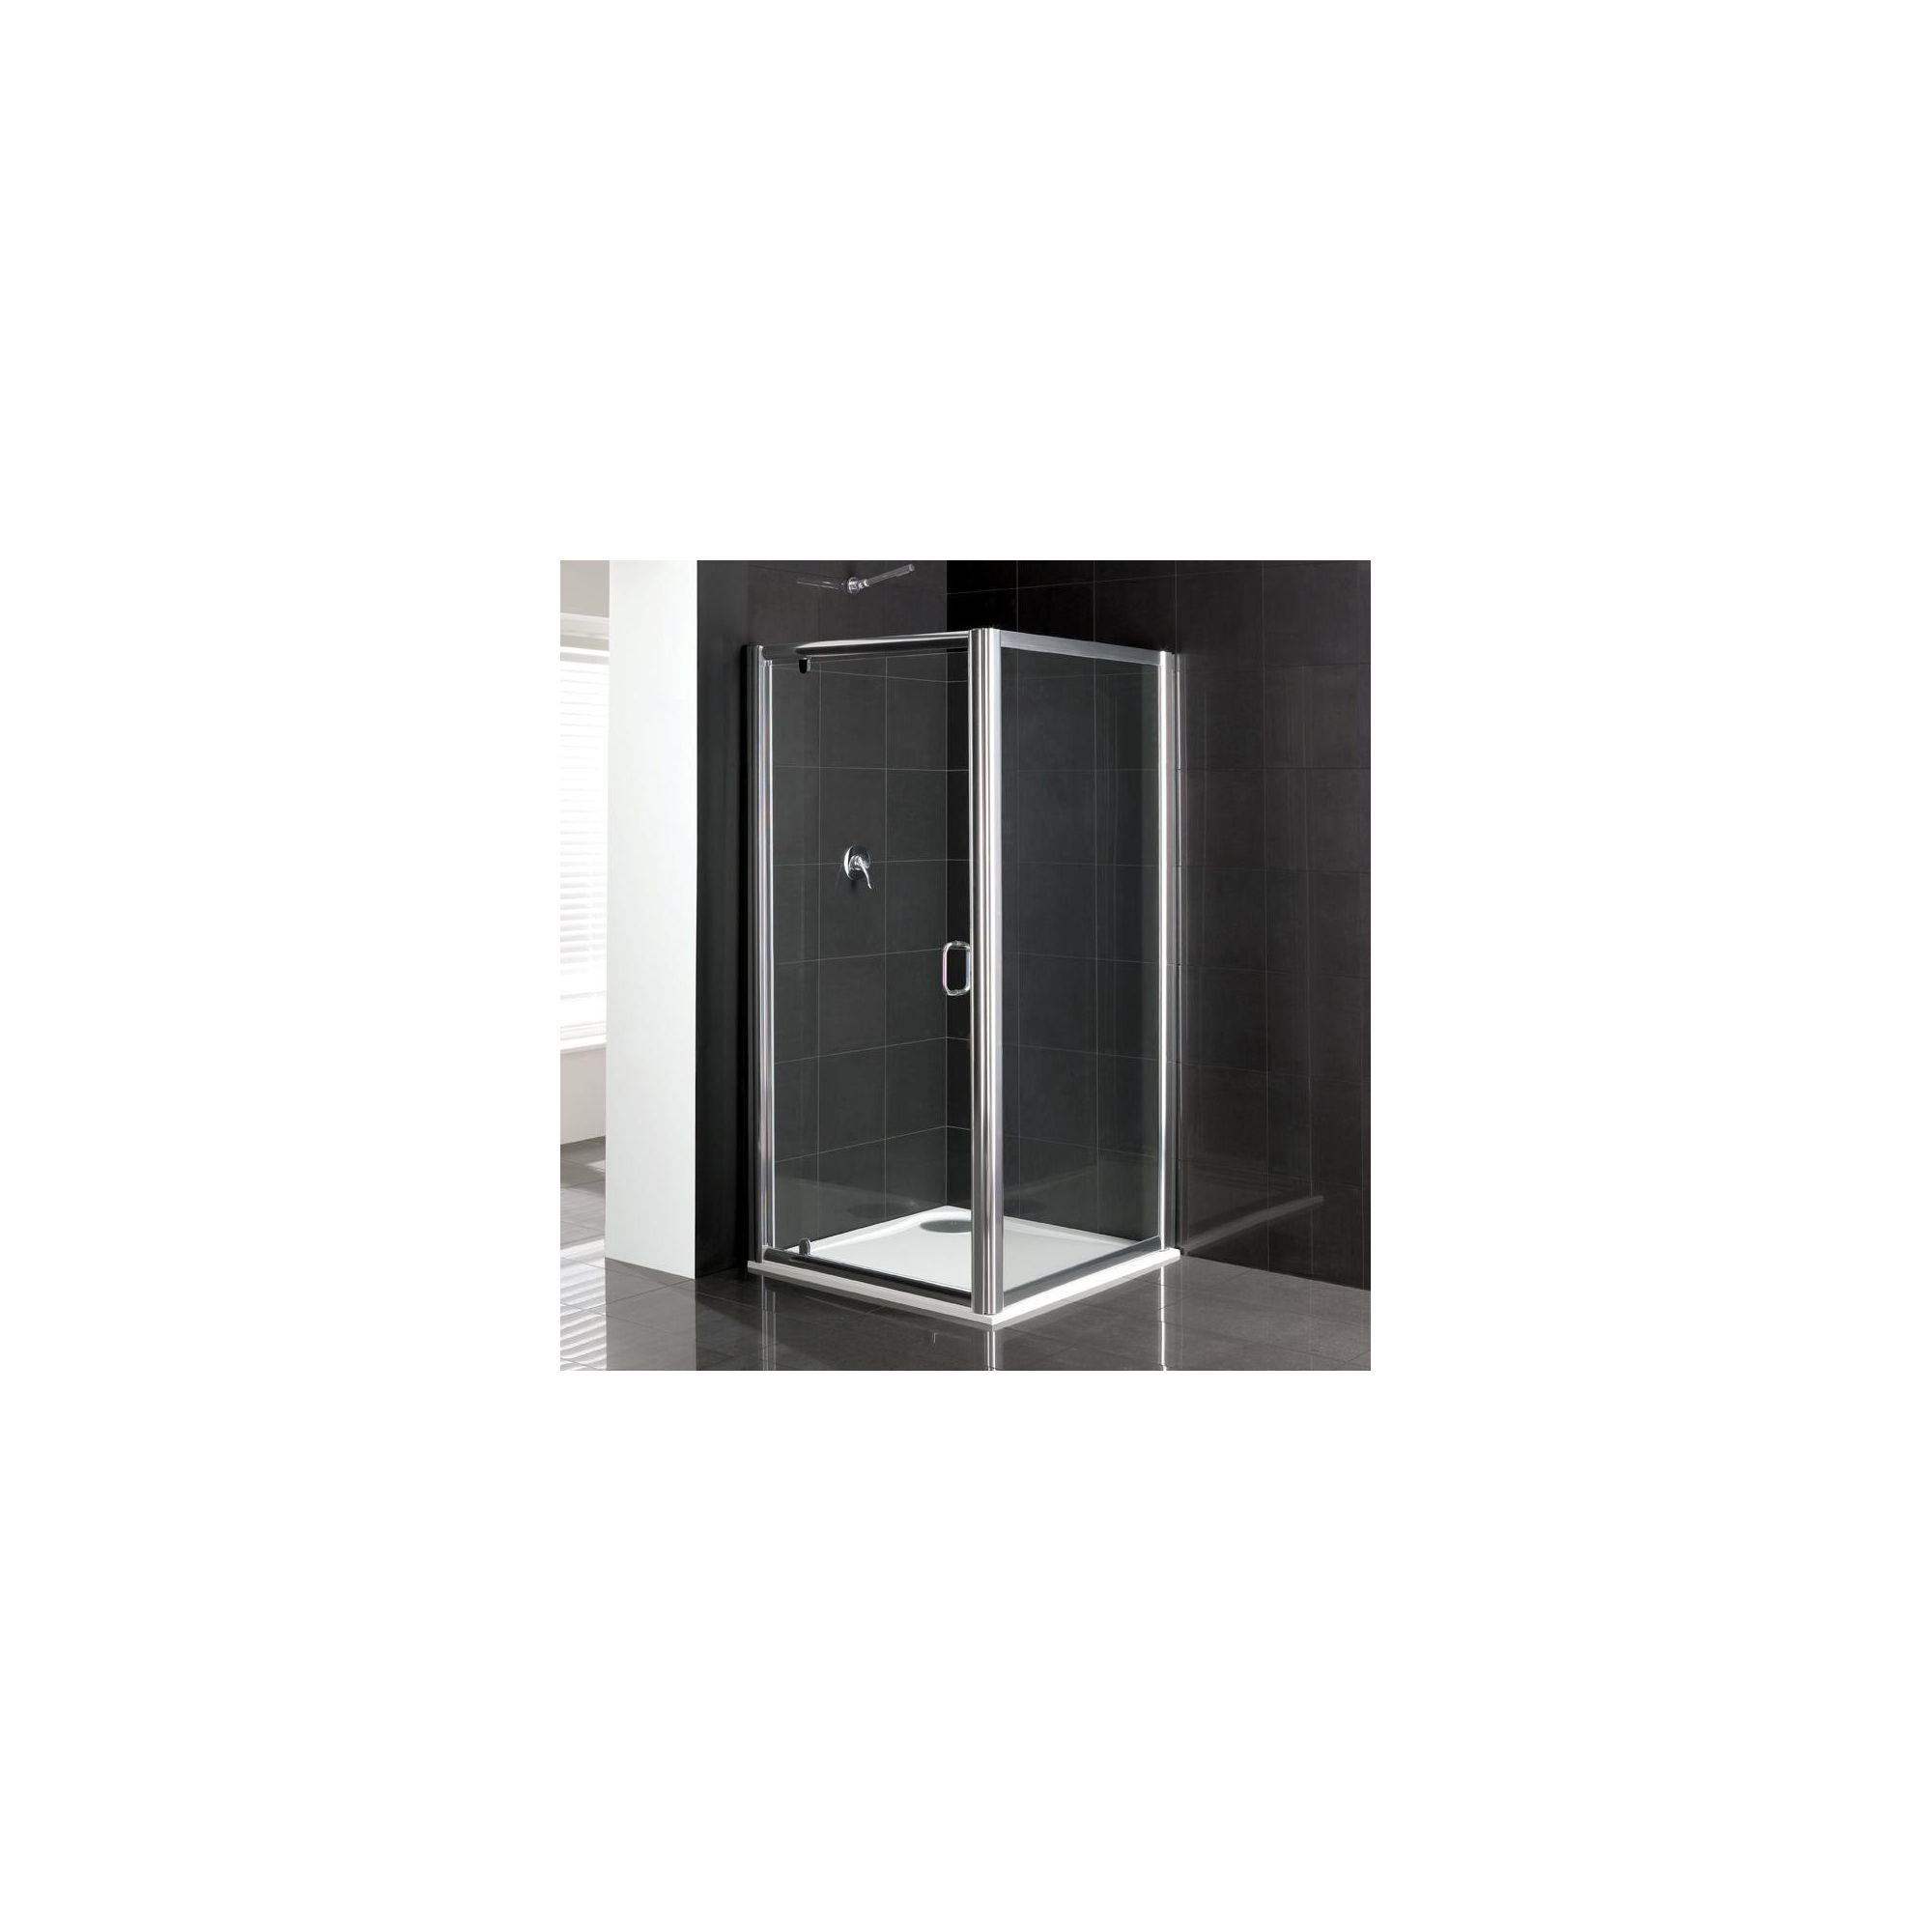 Duchy Elite Silver Pivot Door Shower Enclosure, 1000mm x 1000mm, Standard Tray, 6mm Glass at Tesco Direct